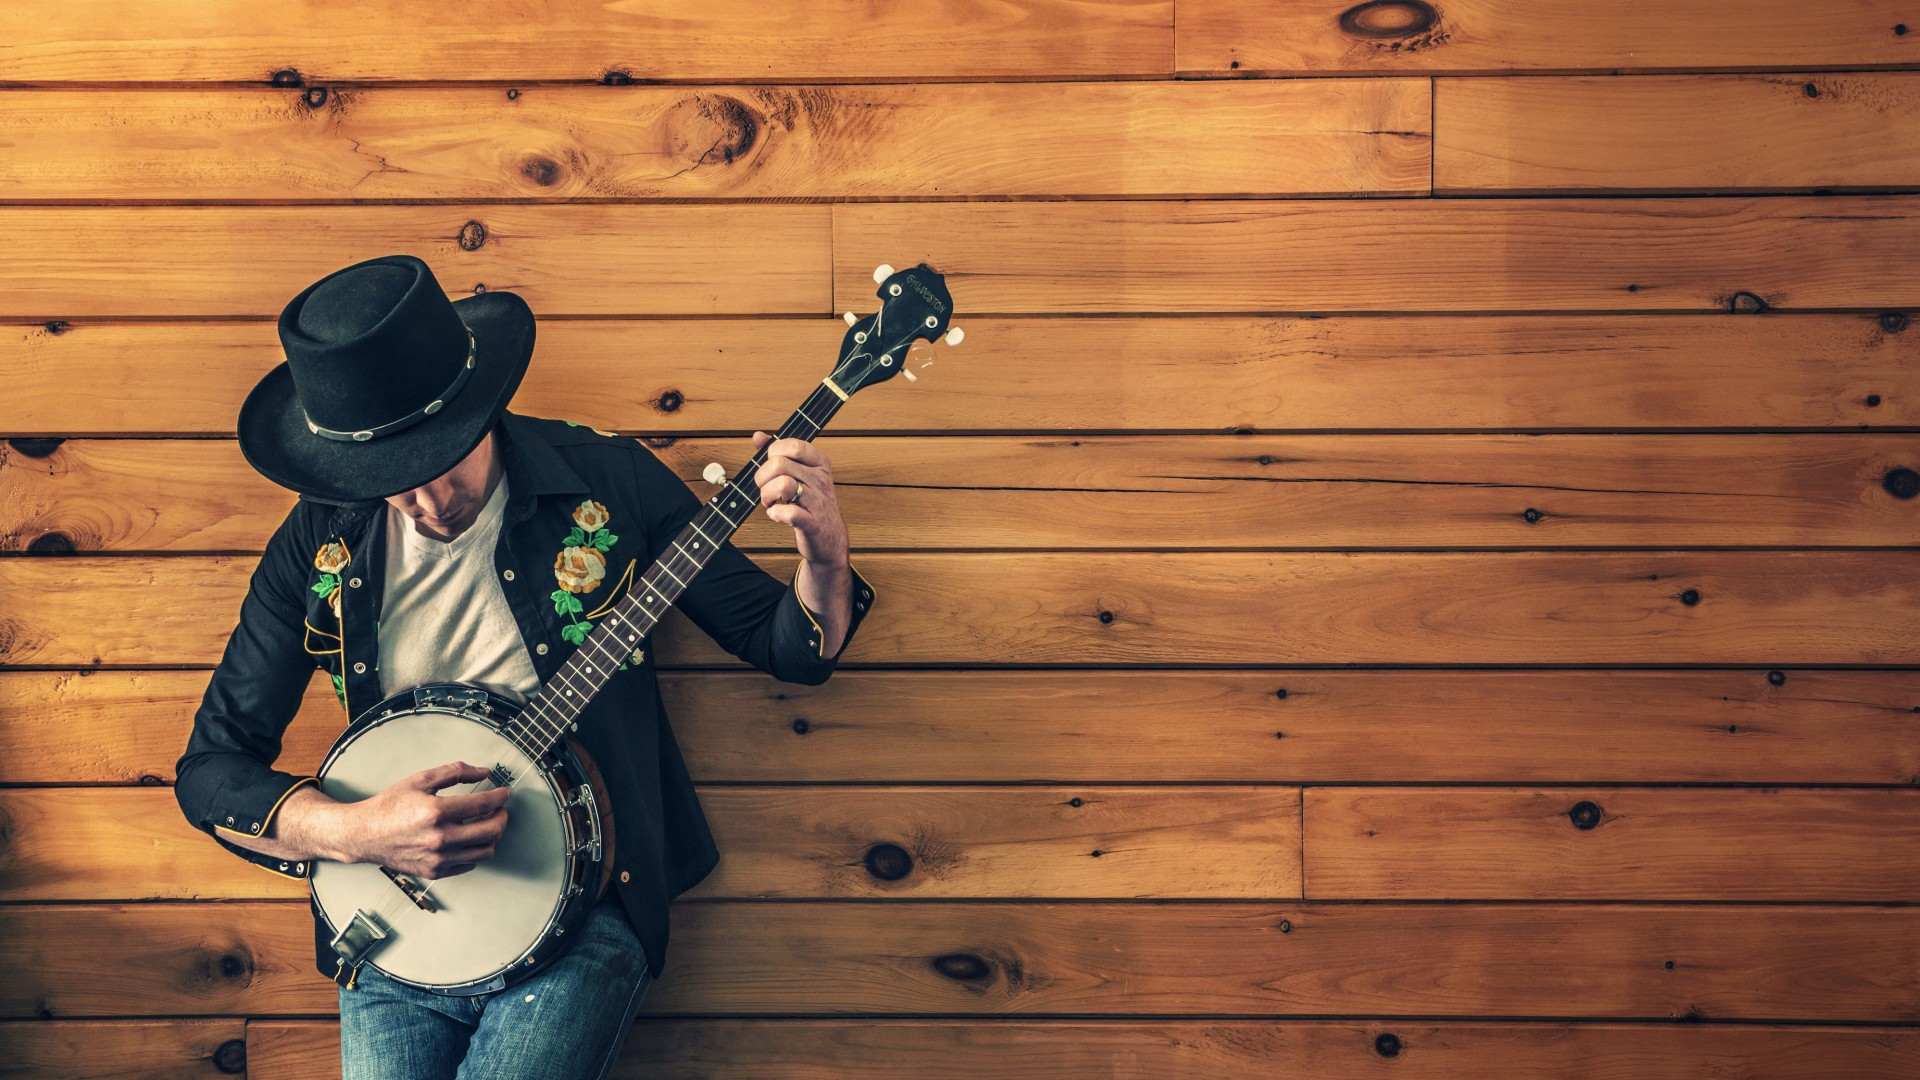 Banjo Player Wallpaper for Desktop 1920x1080